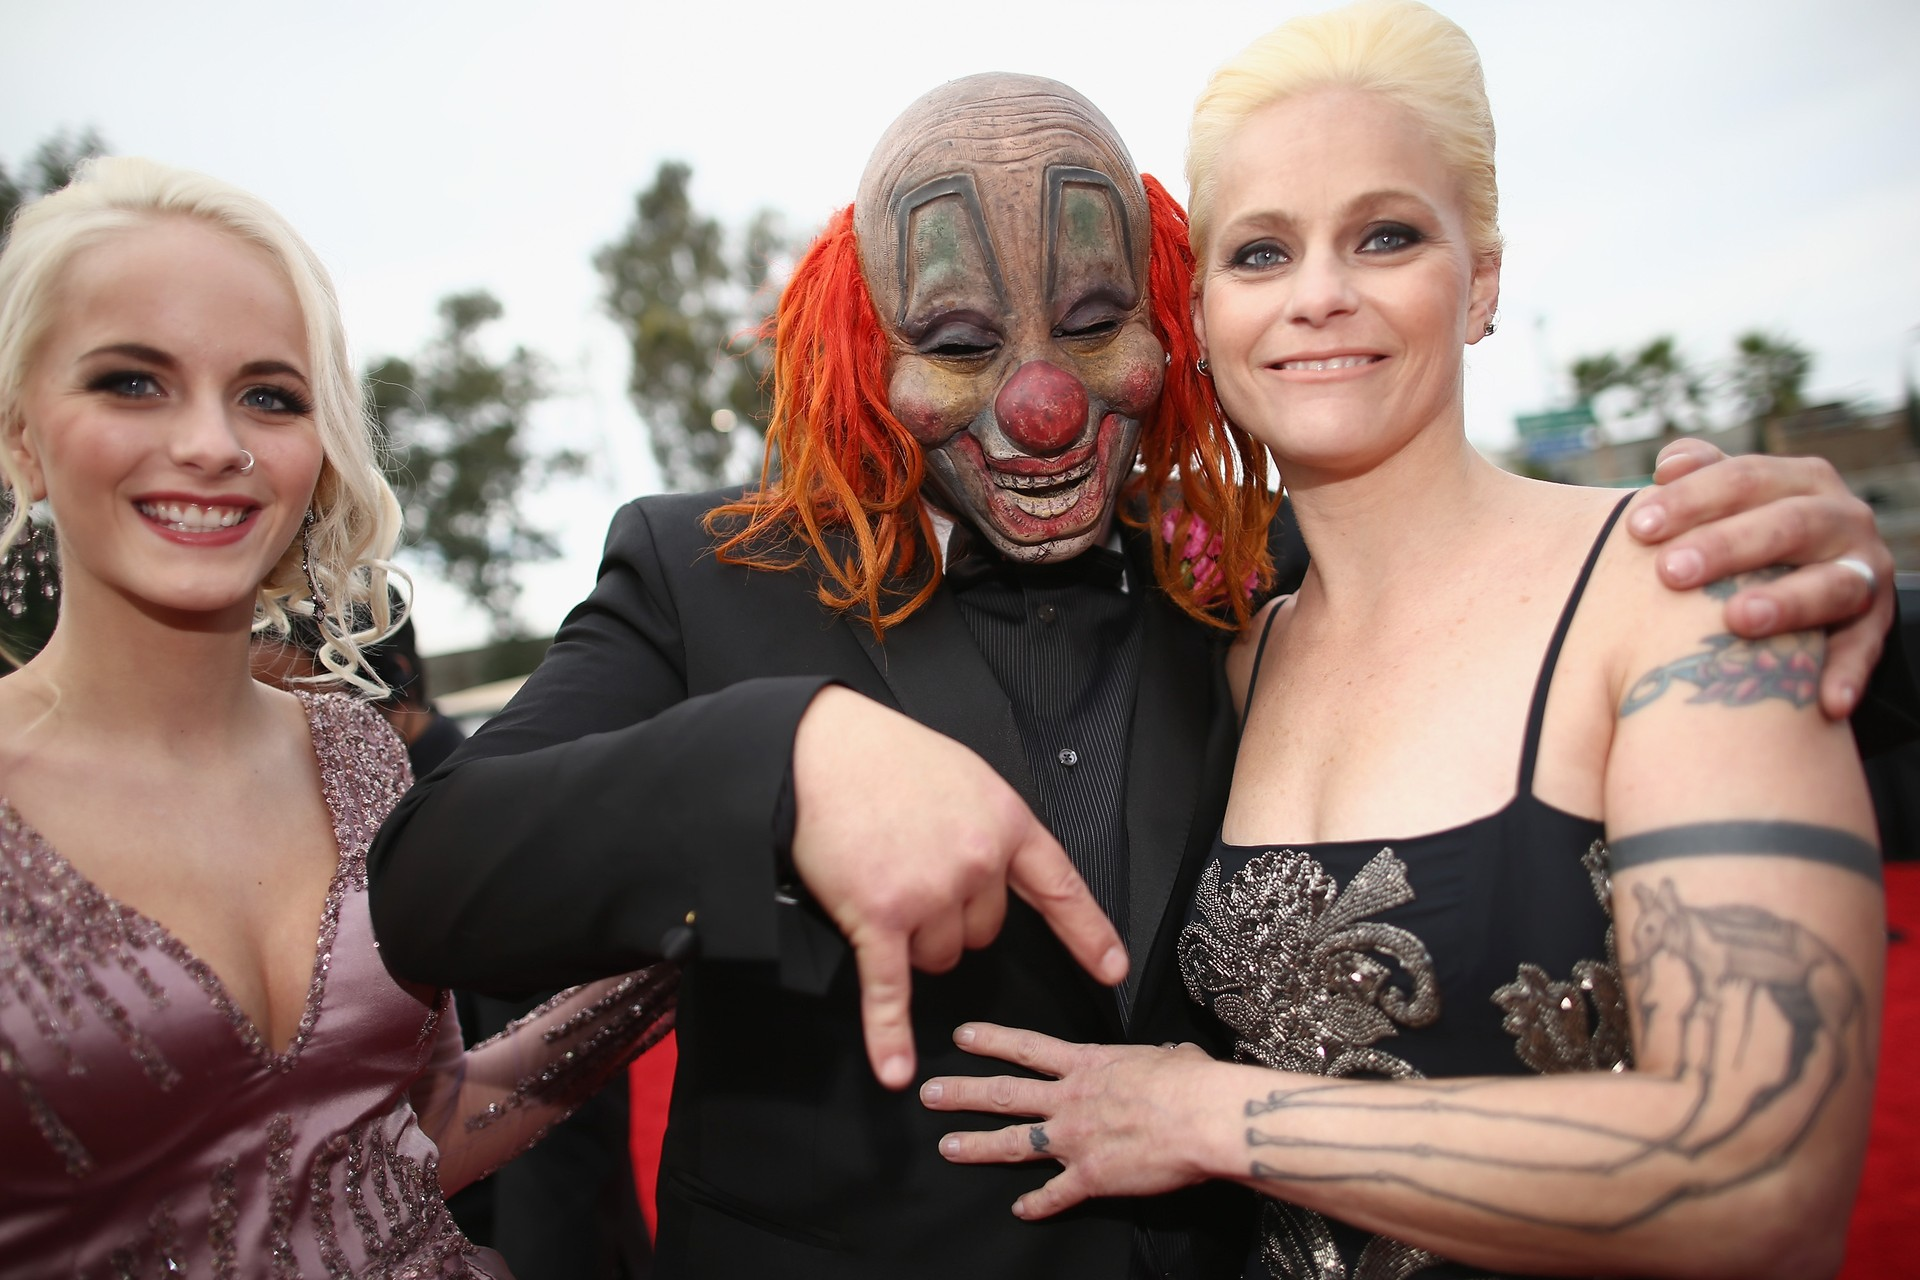 Shawn Crahan com a filha (à esq.) e a esposa no tapete vermelho do Grammy 2014 (Foto: Getty Images)